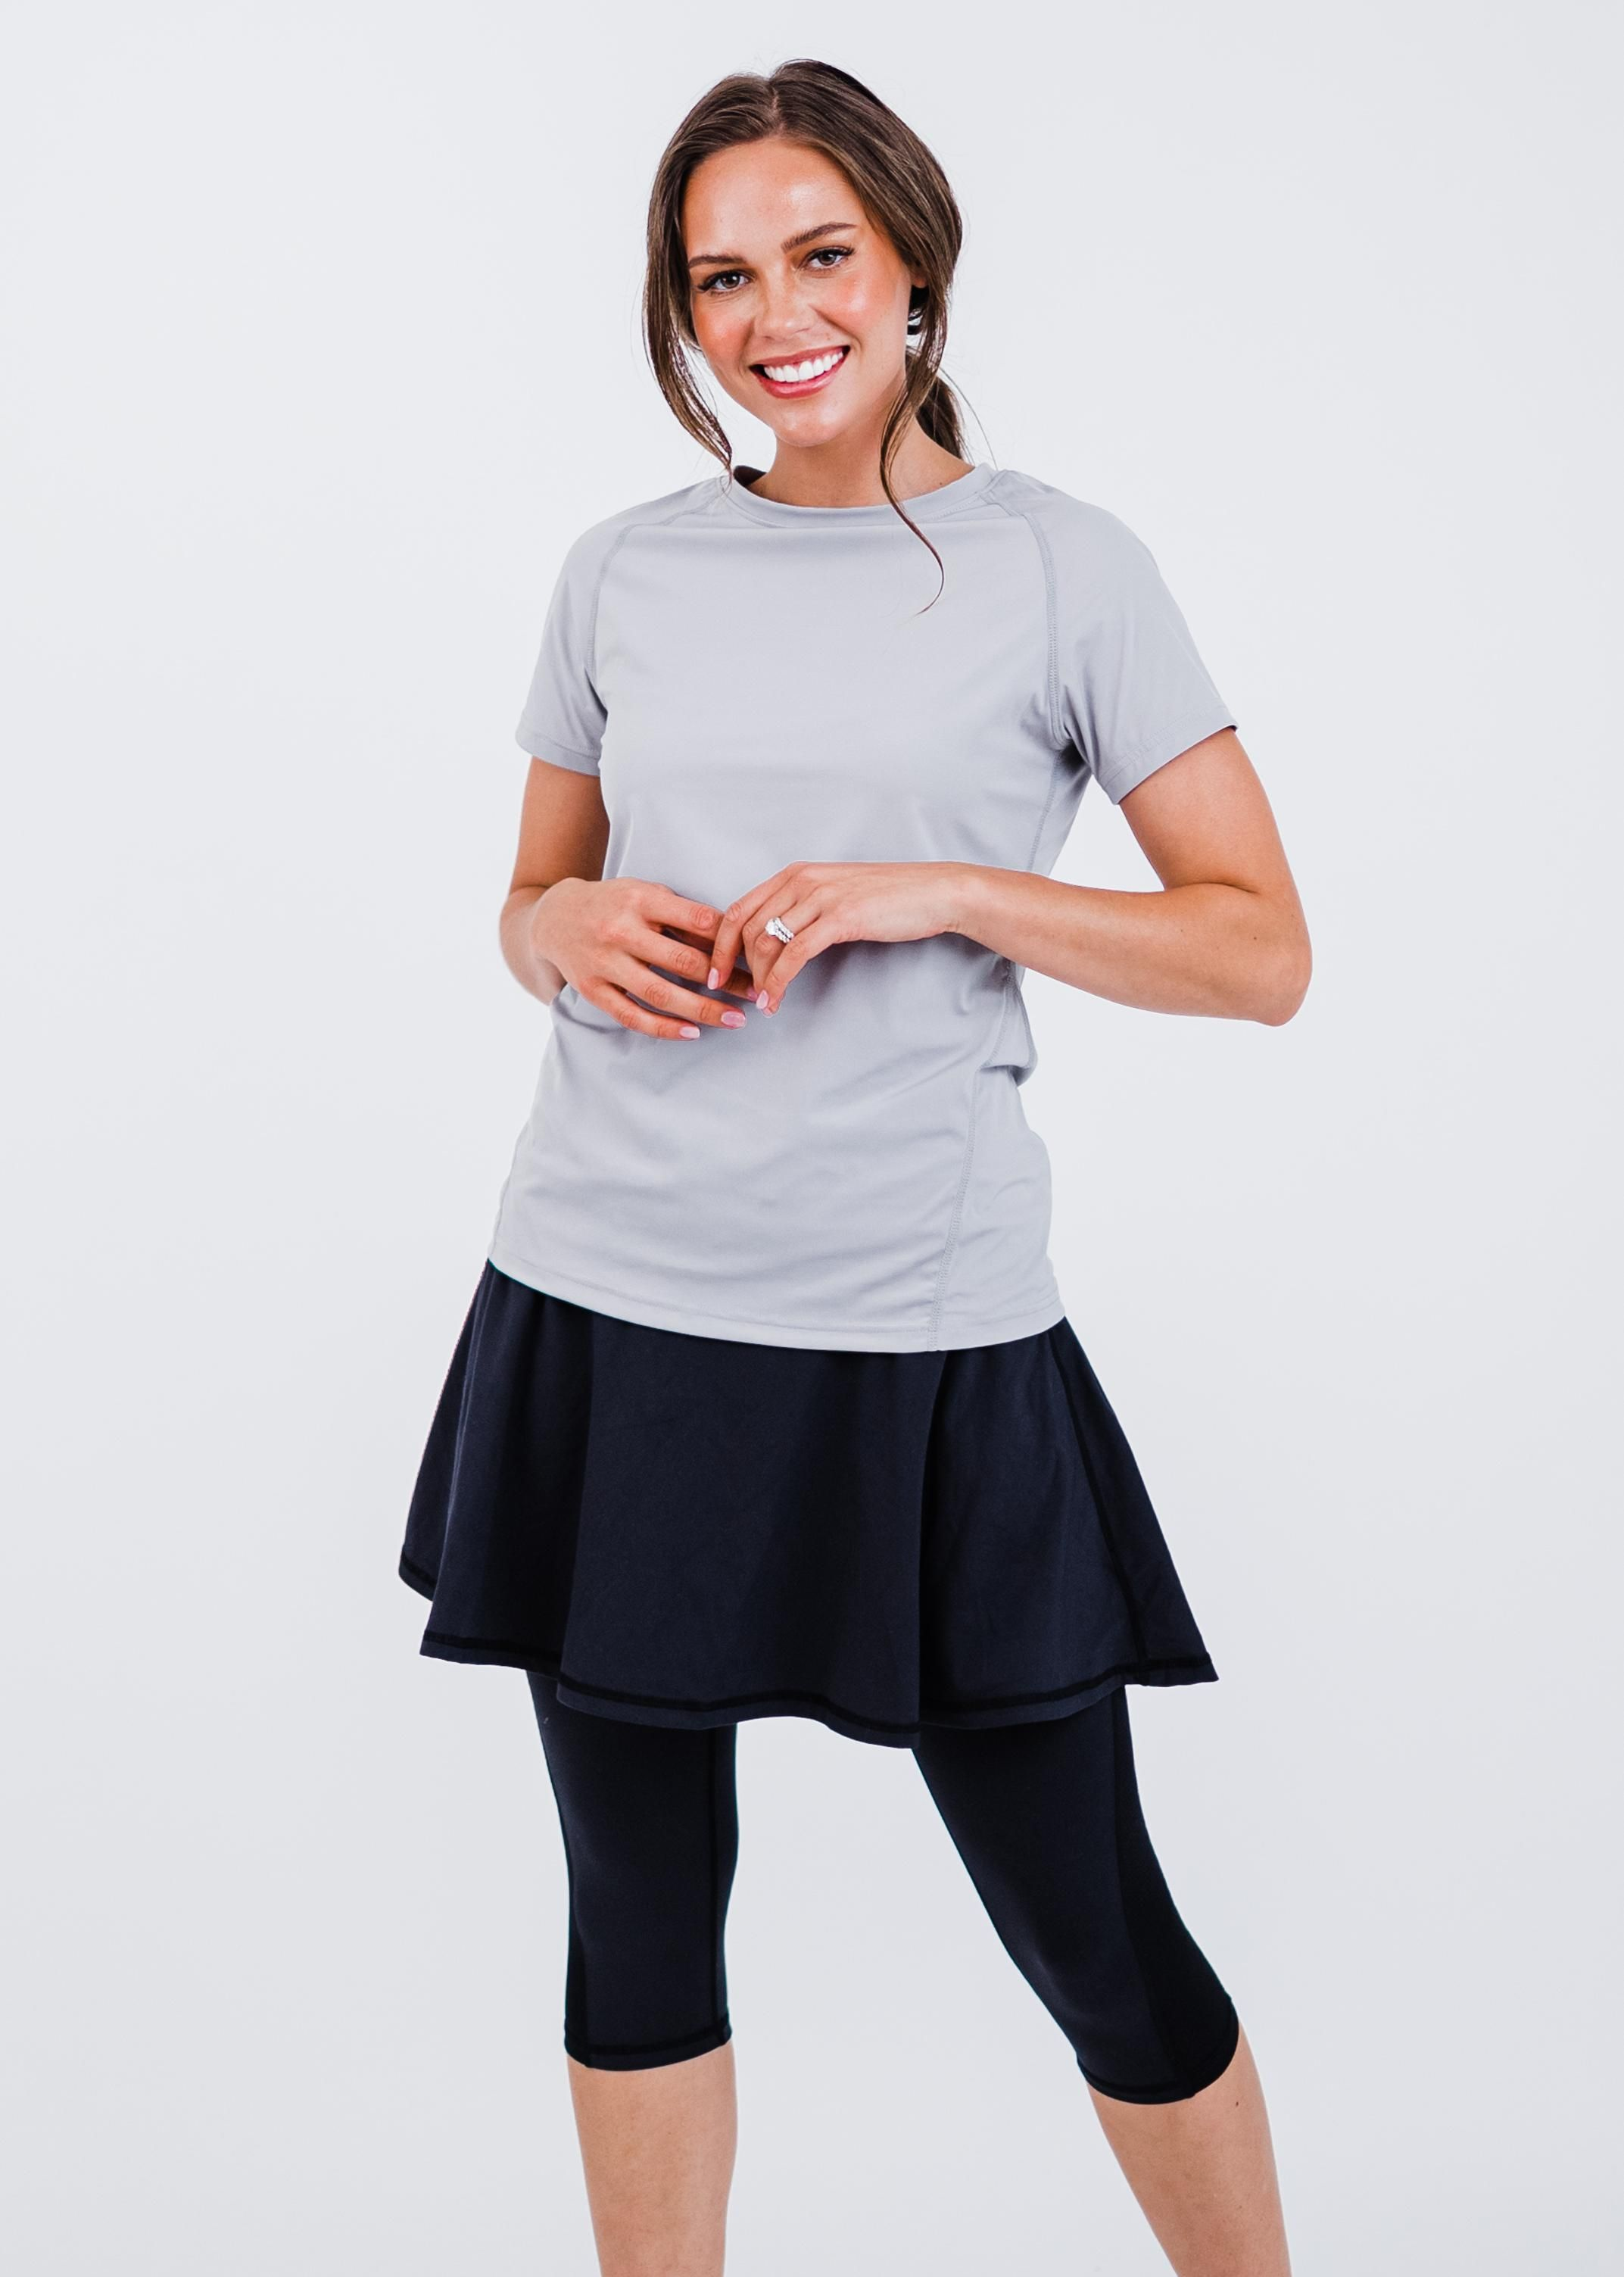 """Pro Performance Top With Flowy Lycra® Sport Skirt With Attached 17"""" Leggings"""